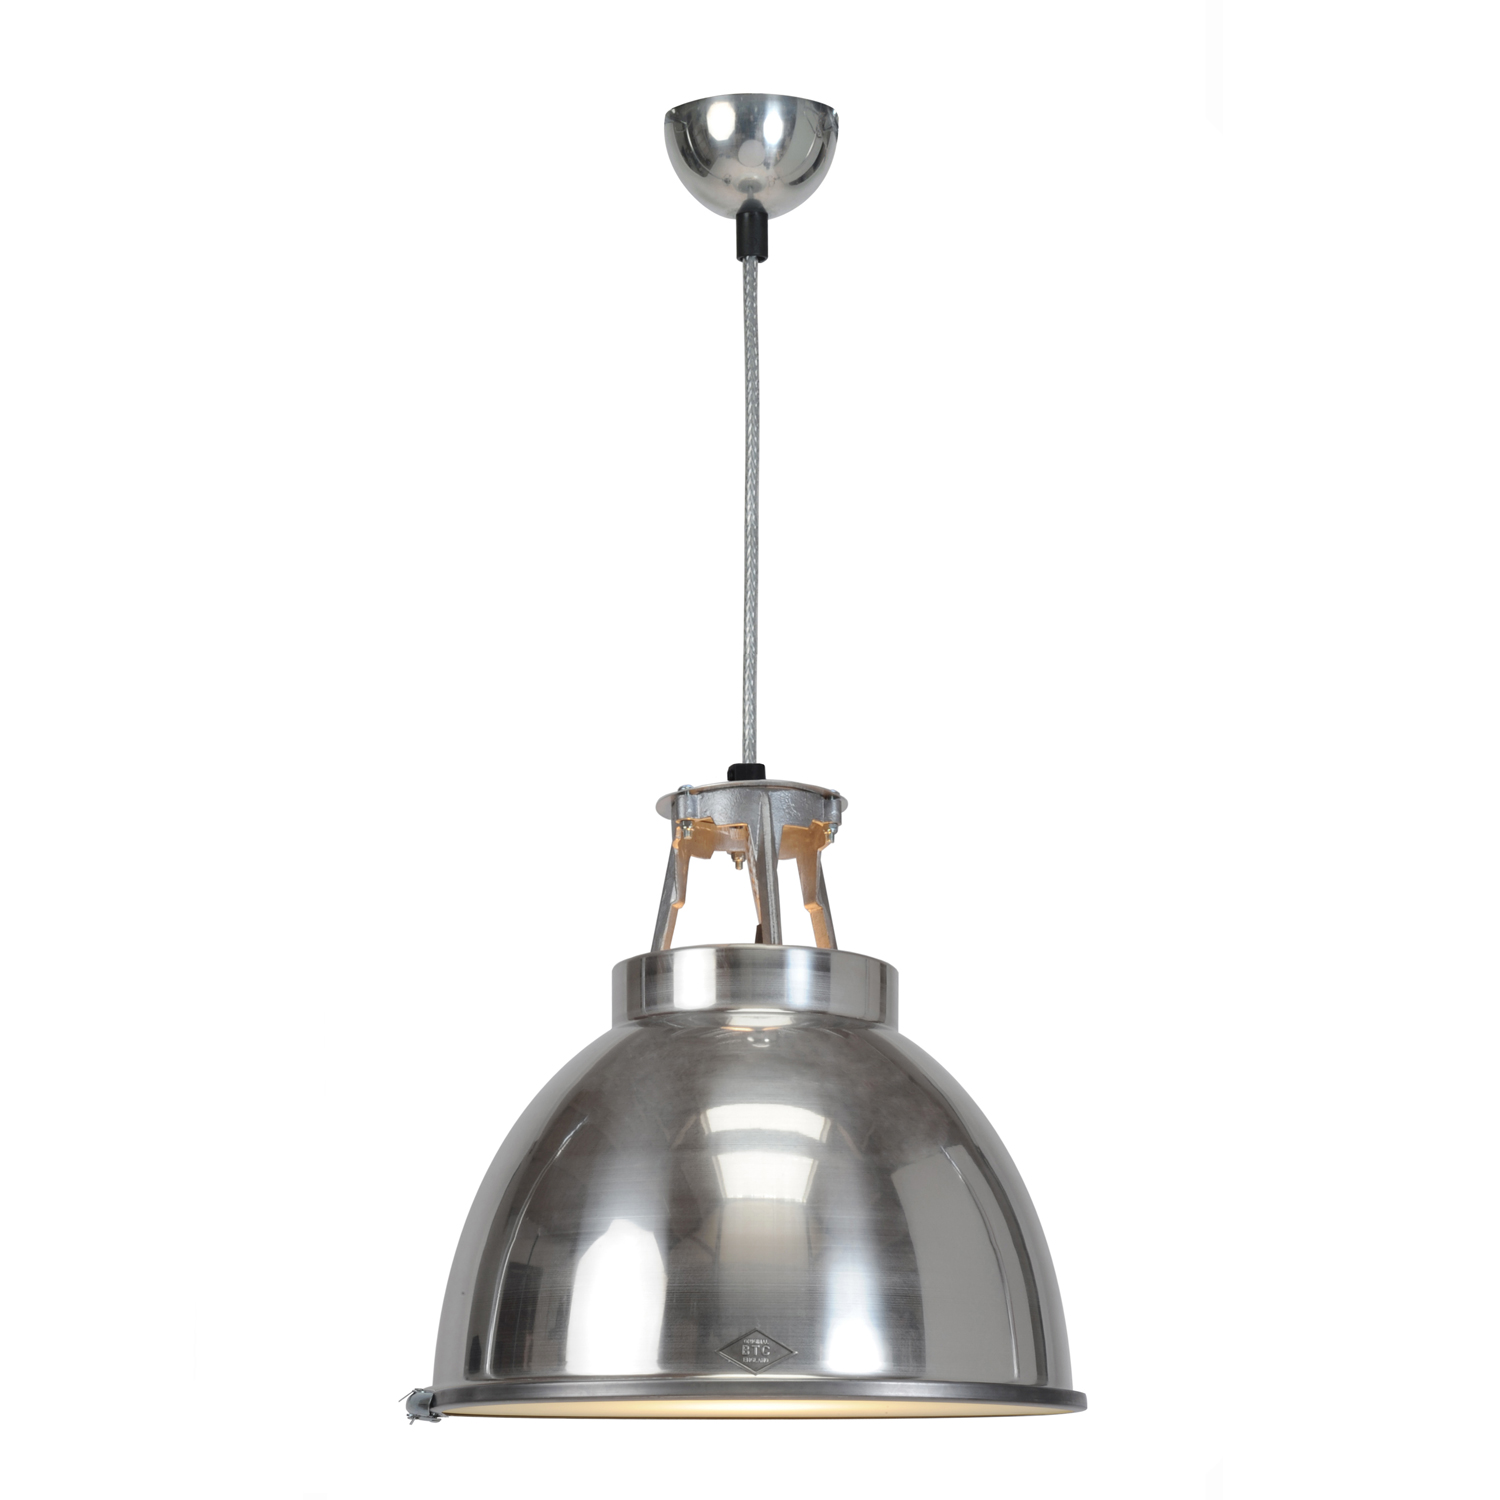 Titan Size 1 Pendant Light, Natural Aluminium with Etched Glass1